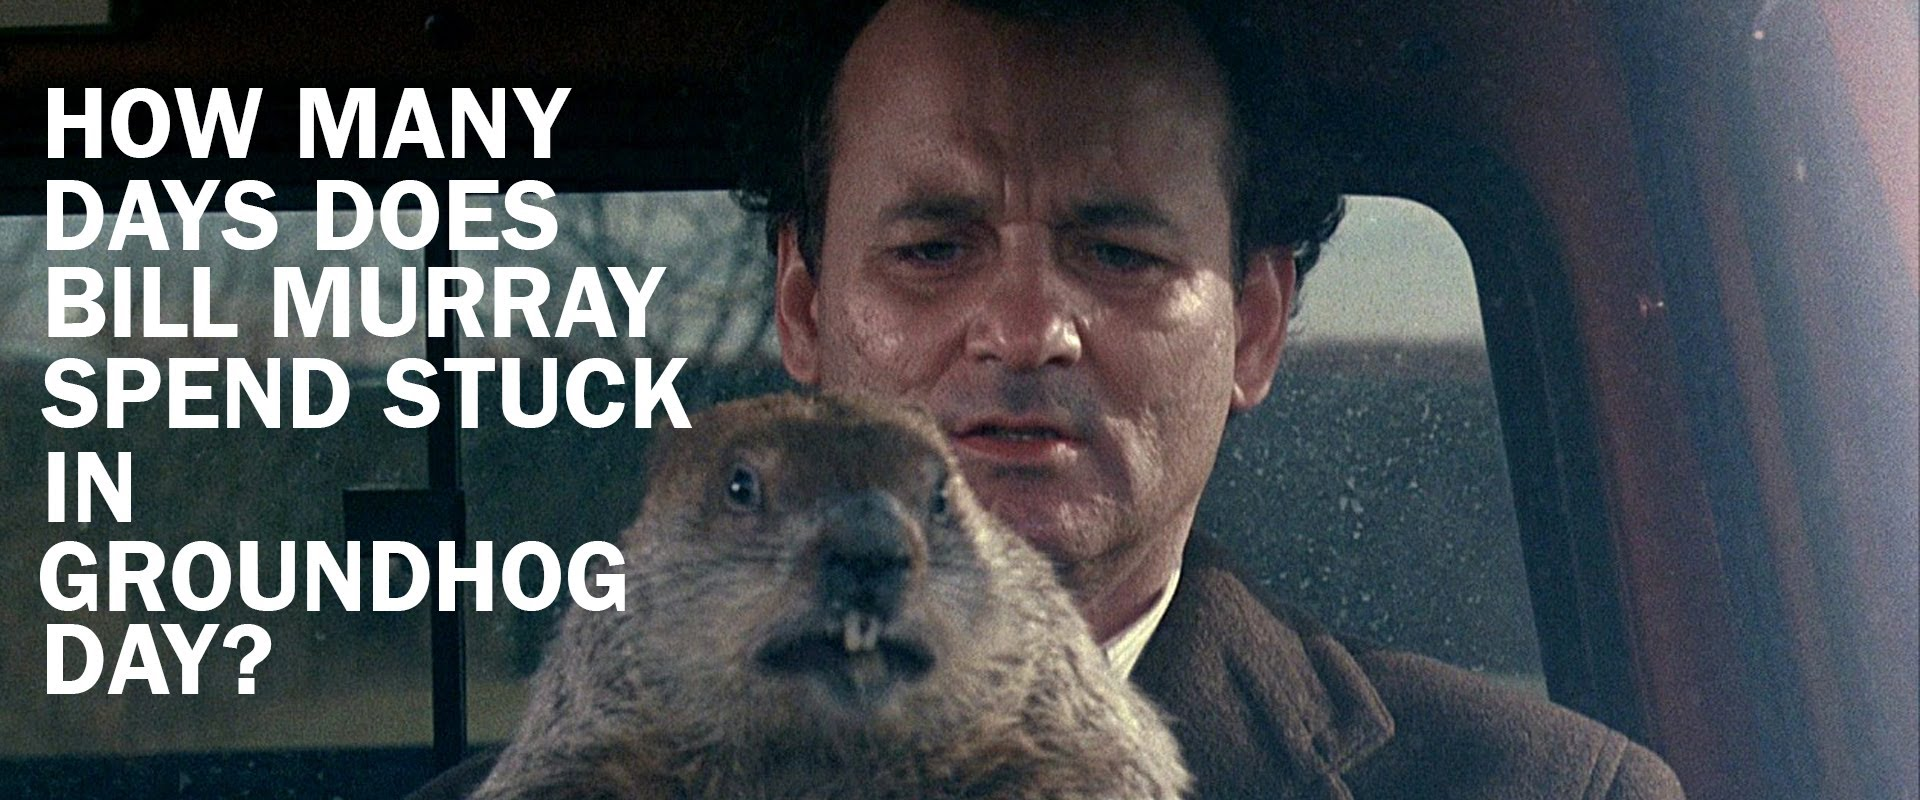 "Wie lange steckte Bill Murray nun im ""Groundhog Day"" fest?"